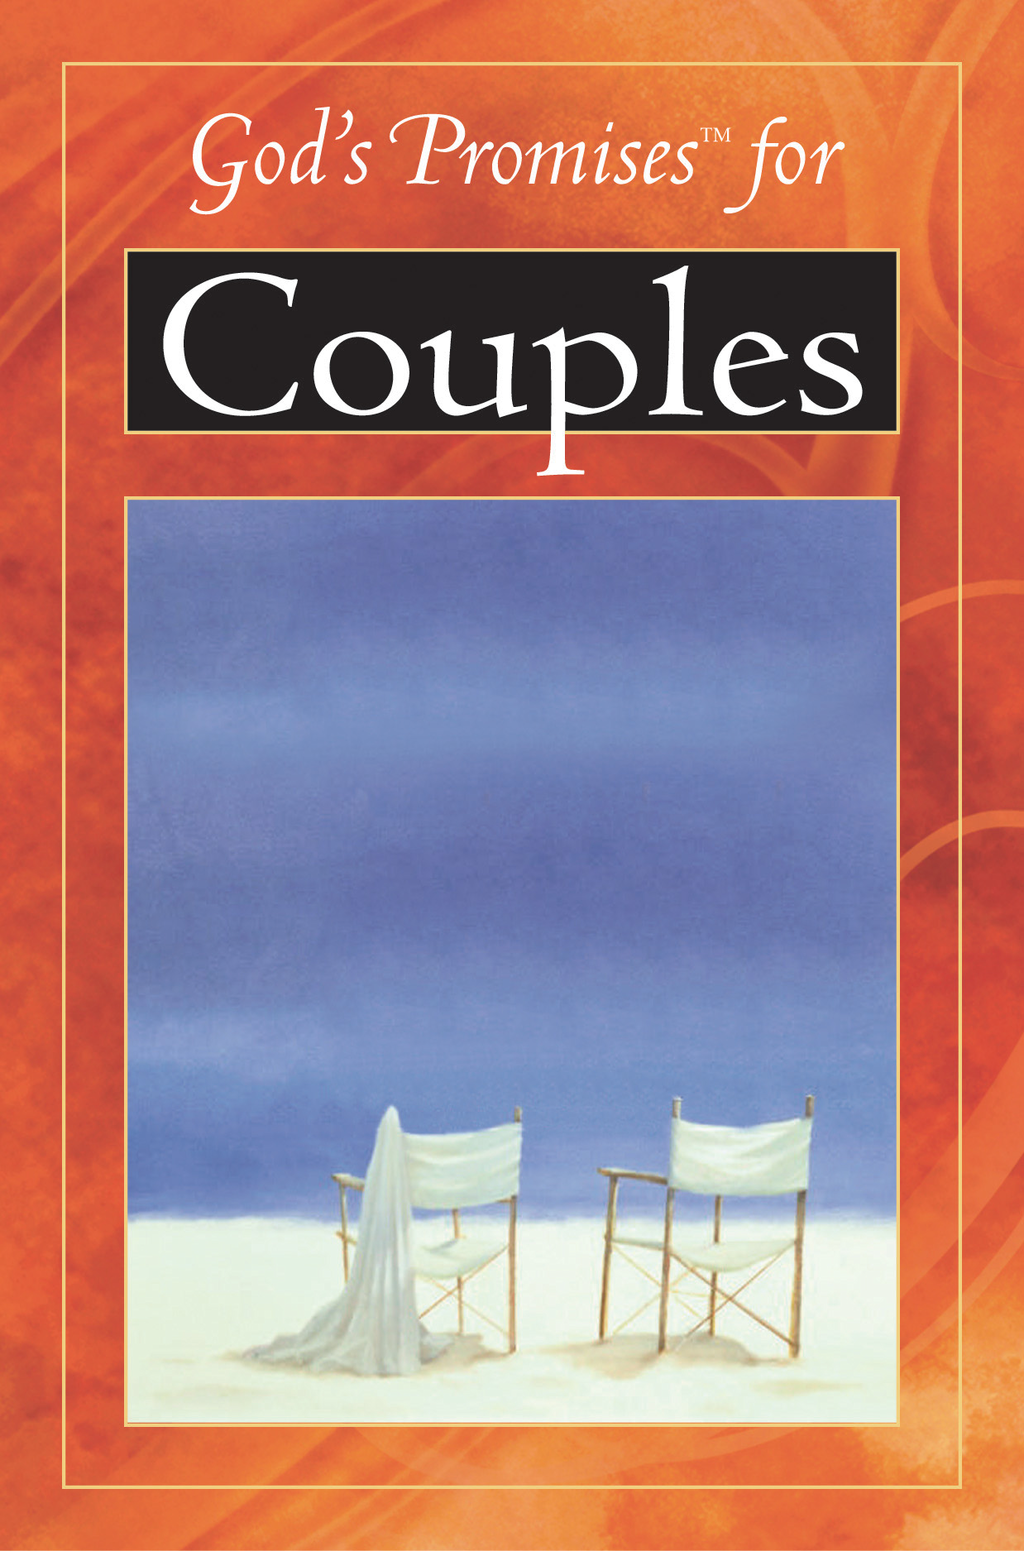 God's Promises for Couples By: Jack Countryman